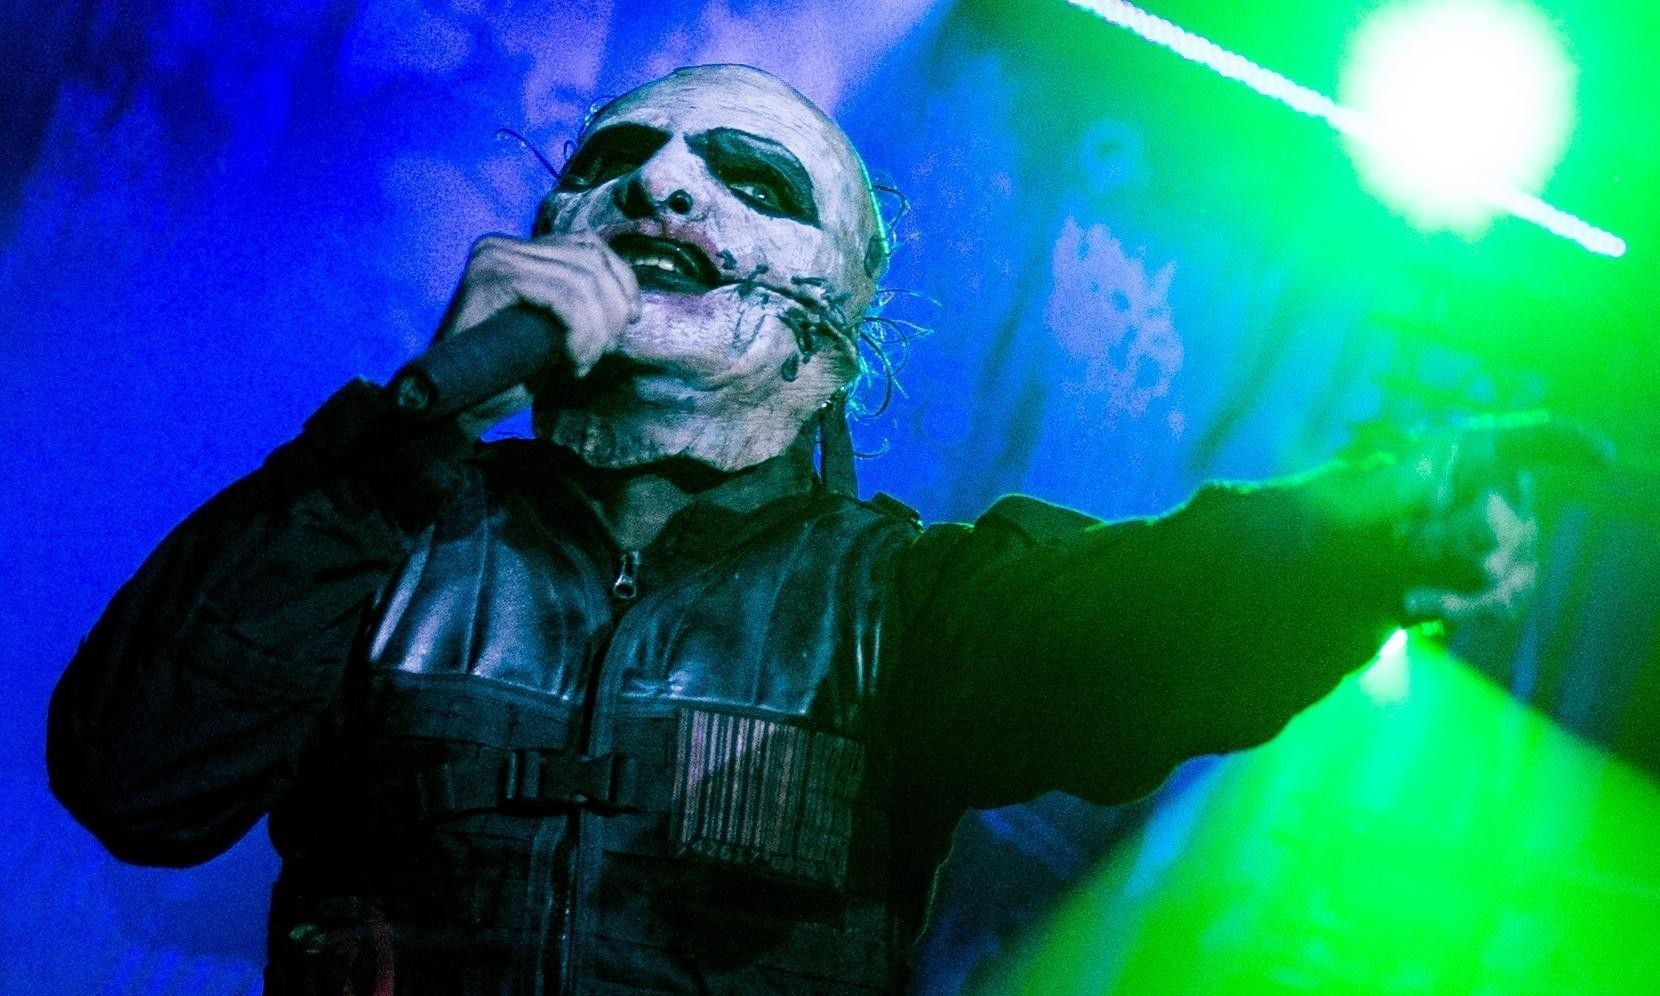 Slipknot's Corey Taylor answers your questions: 'Donald Trump makes me want to eat my shoes'